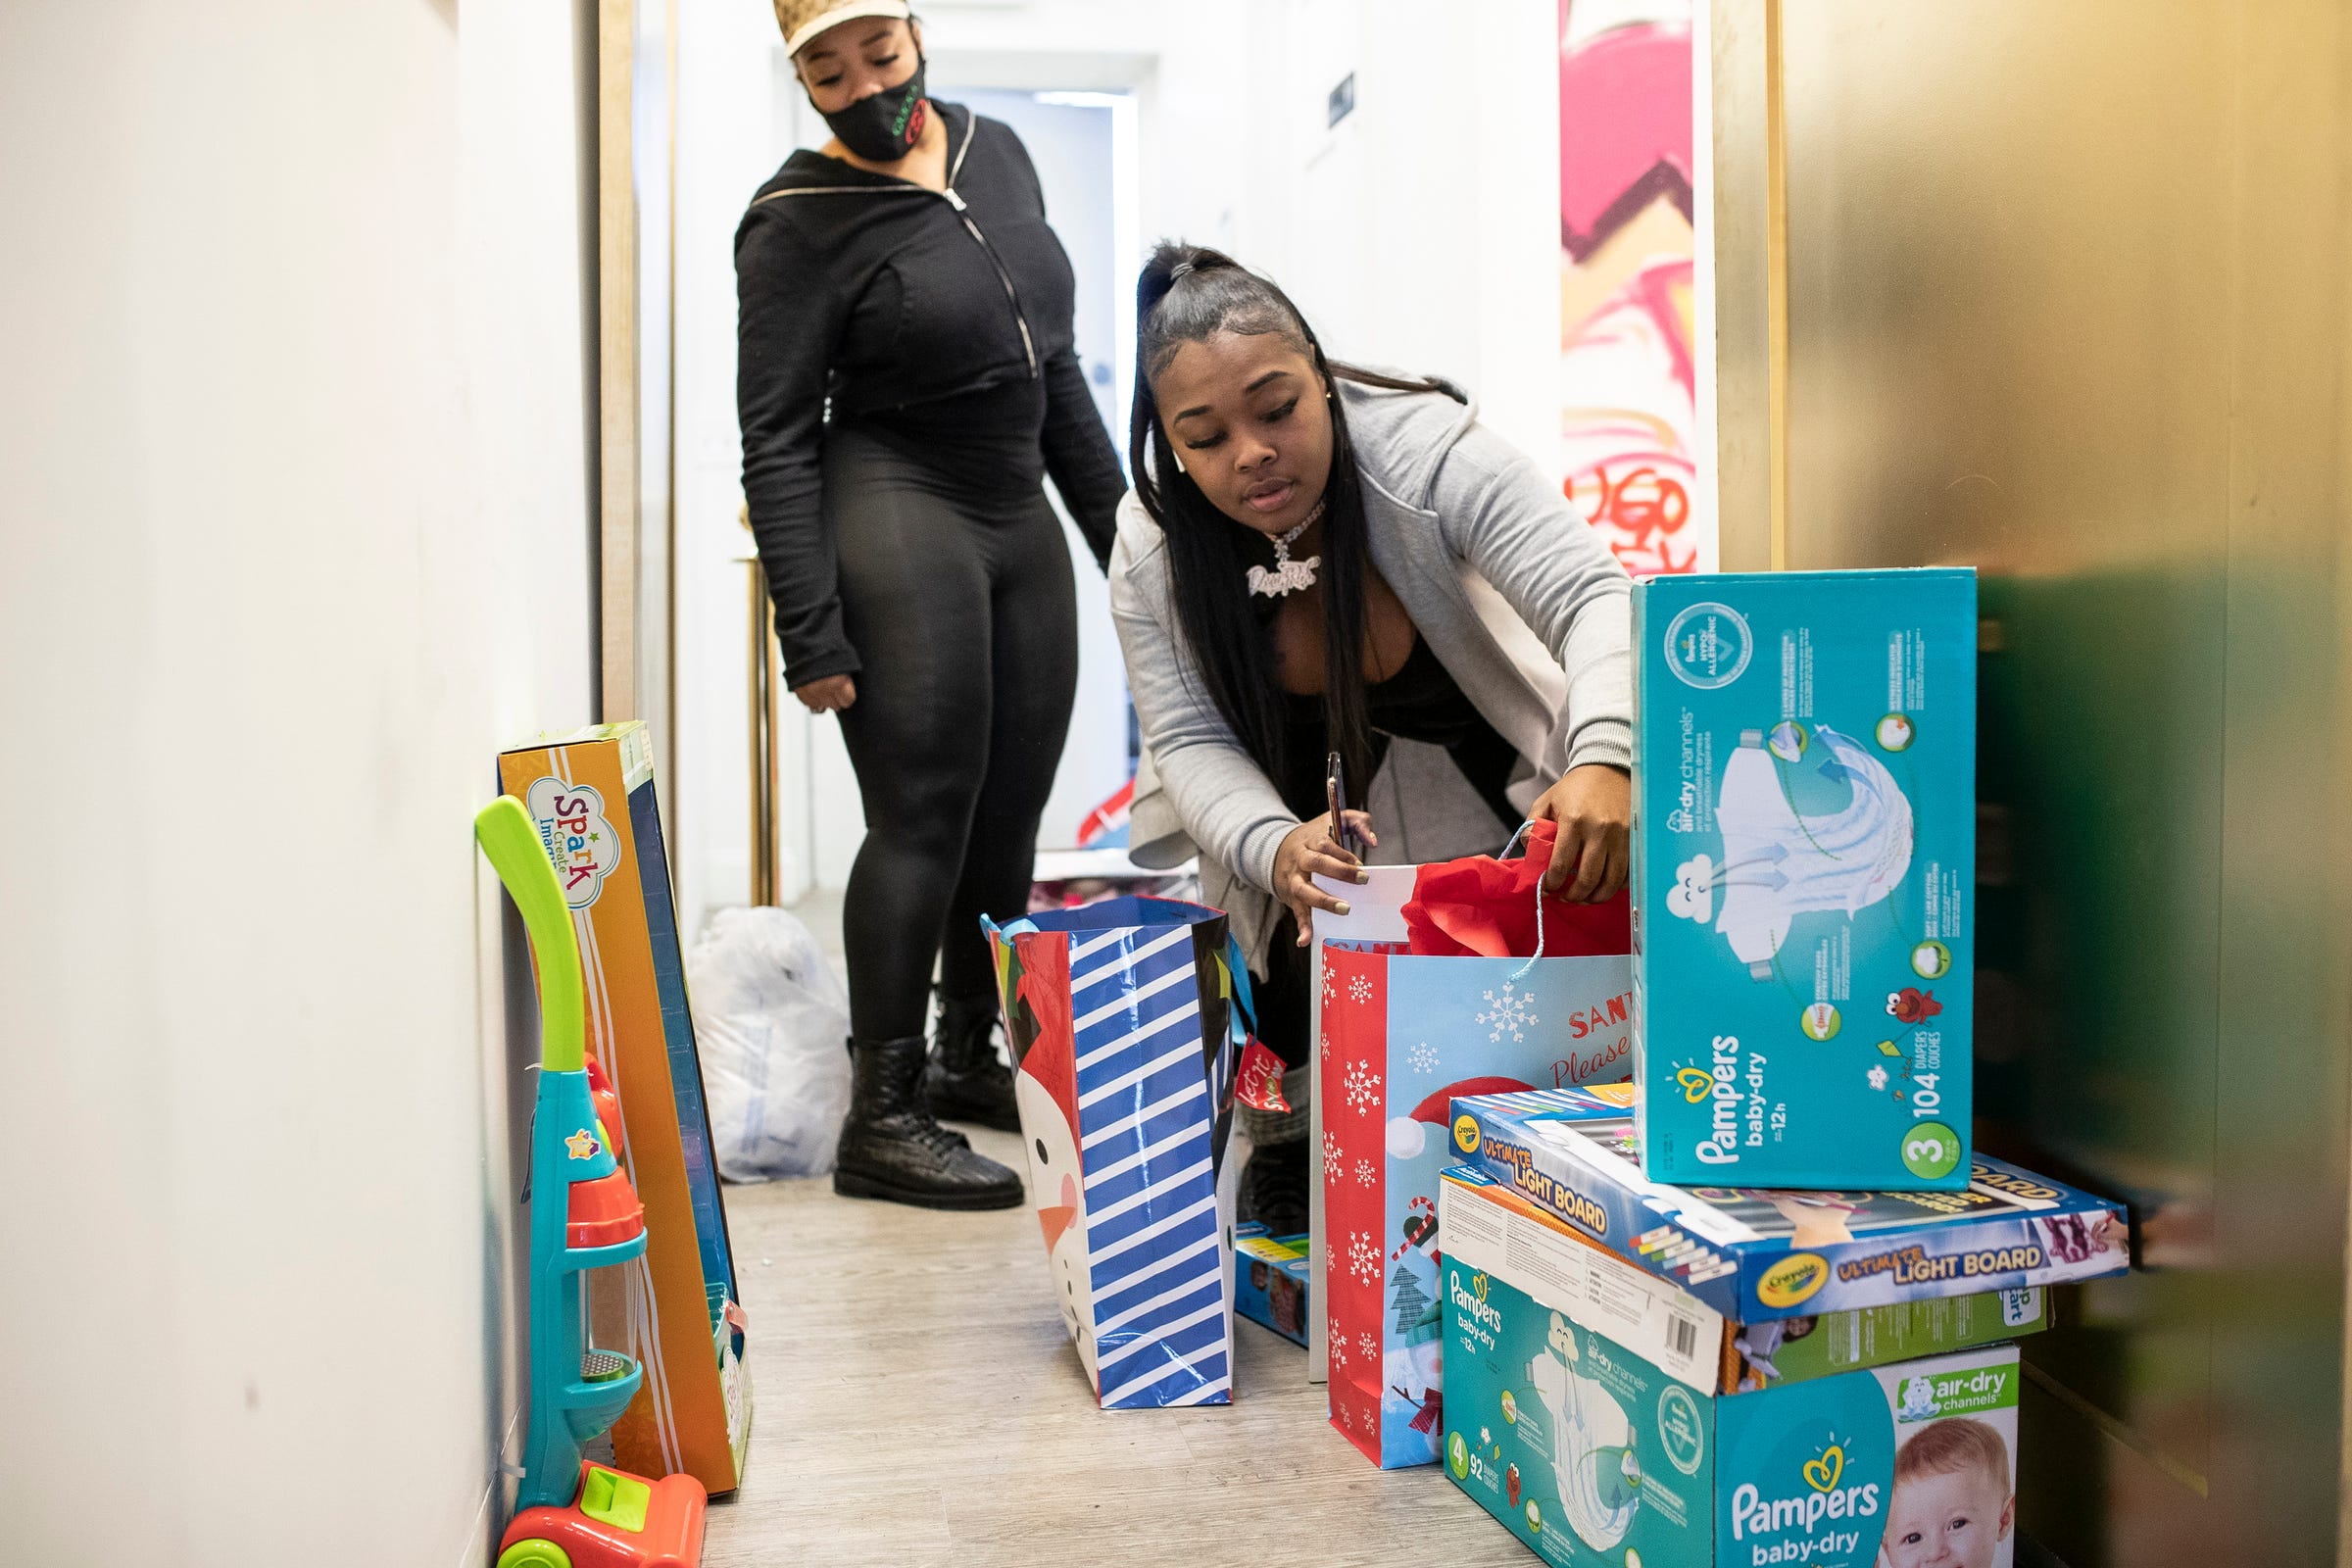 Darylynn Mumphord, owner of the Dream Rich Art Museum, center right, and Bonnie Parker, owner of Silk Hair Company, wrap and sort gifts for families at Dream Rich Art Museum in Detroit on Tuesday, Dec. 22, 2020.